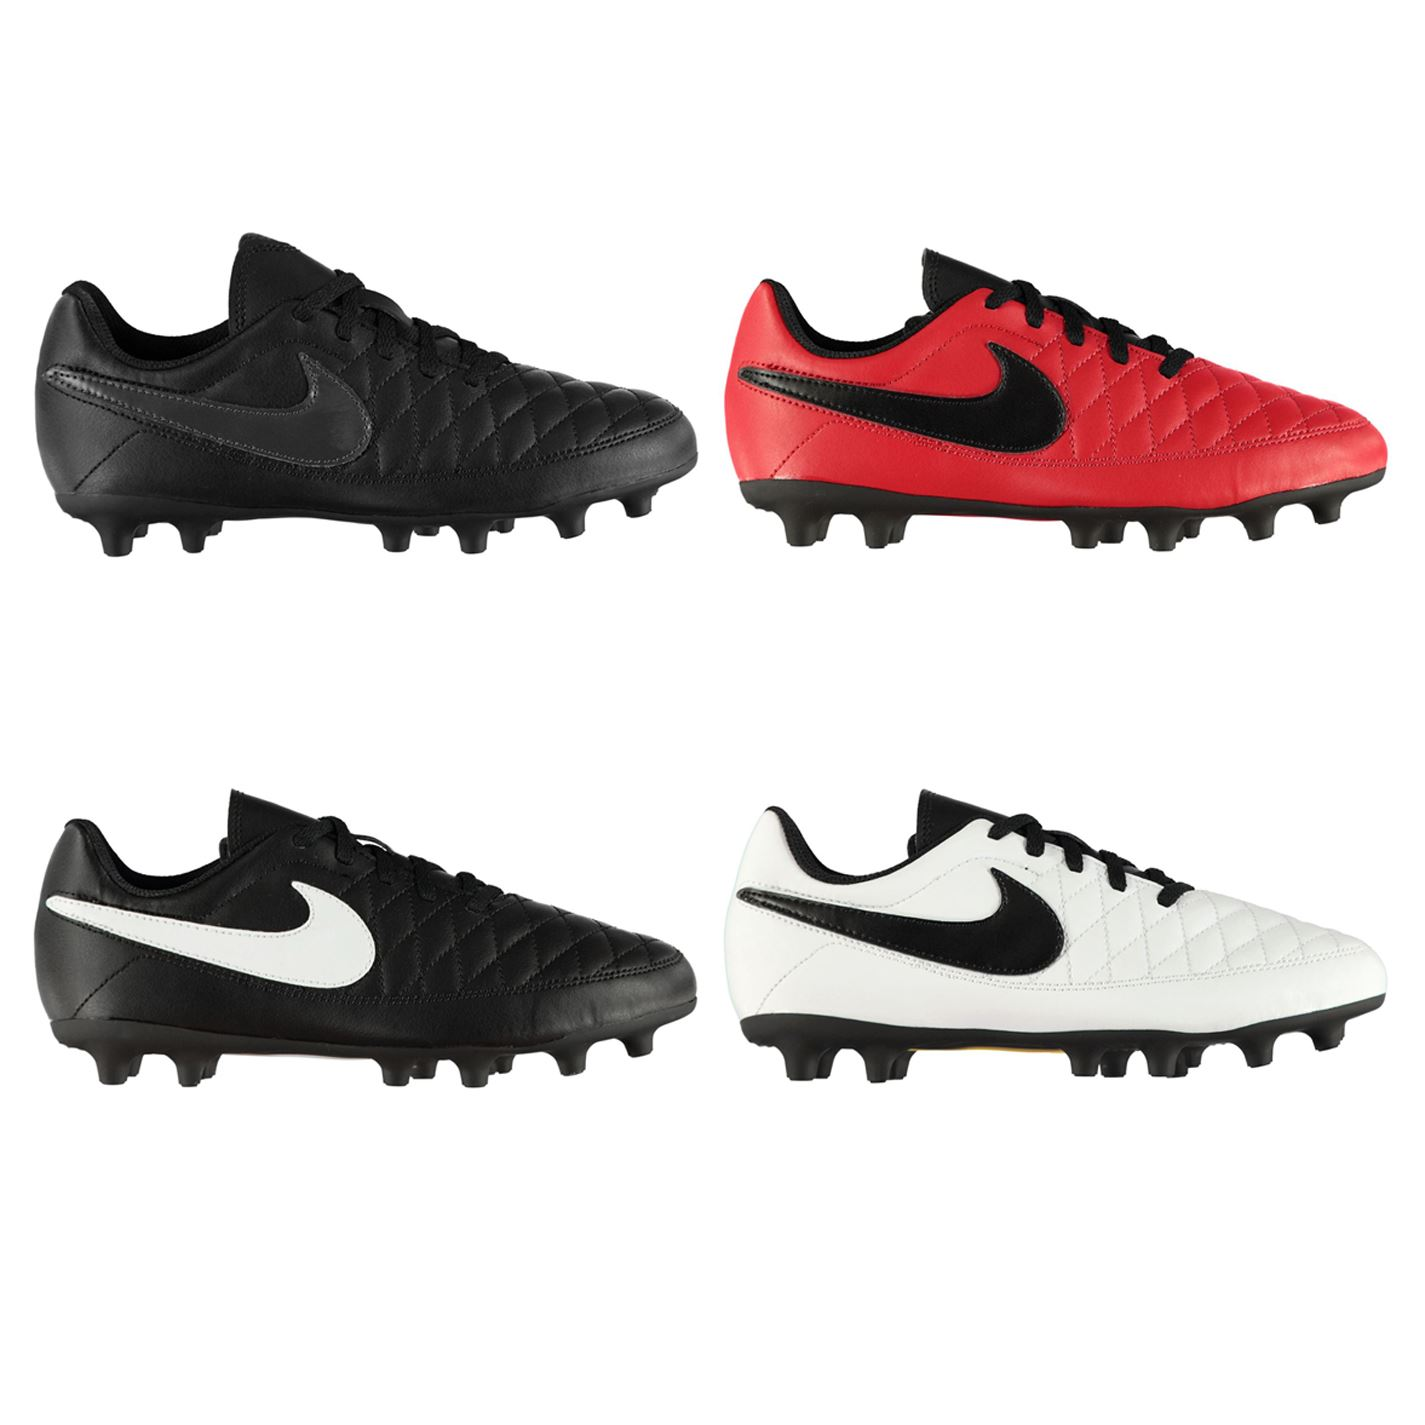 d13e1435e Details about Nike Majestry FG Firm Ground Football Boots Juniors Soccer  Shoes Cleats